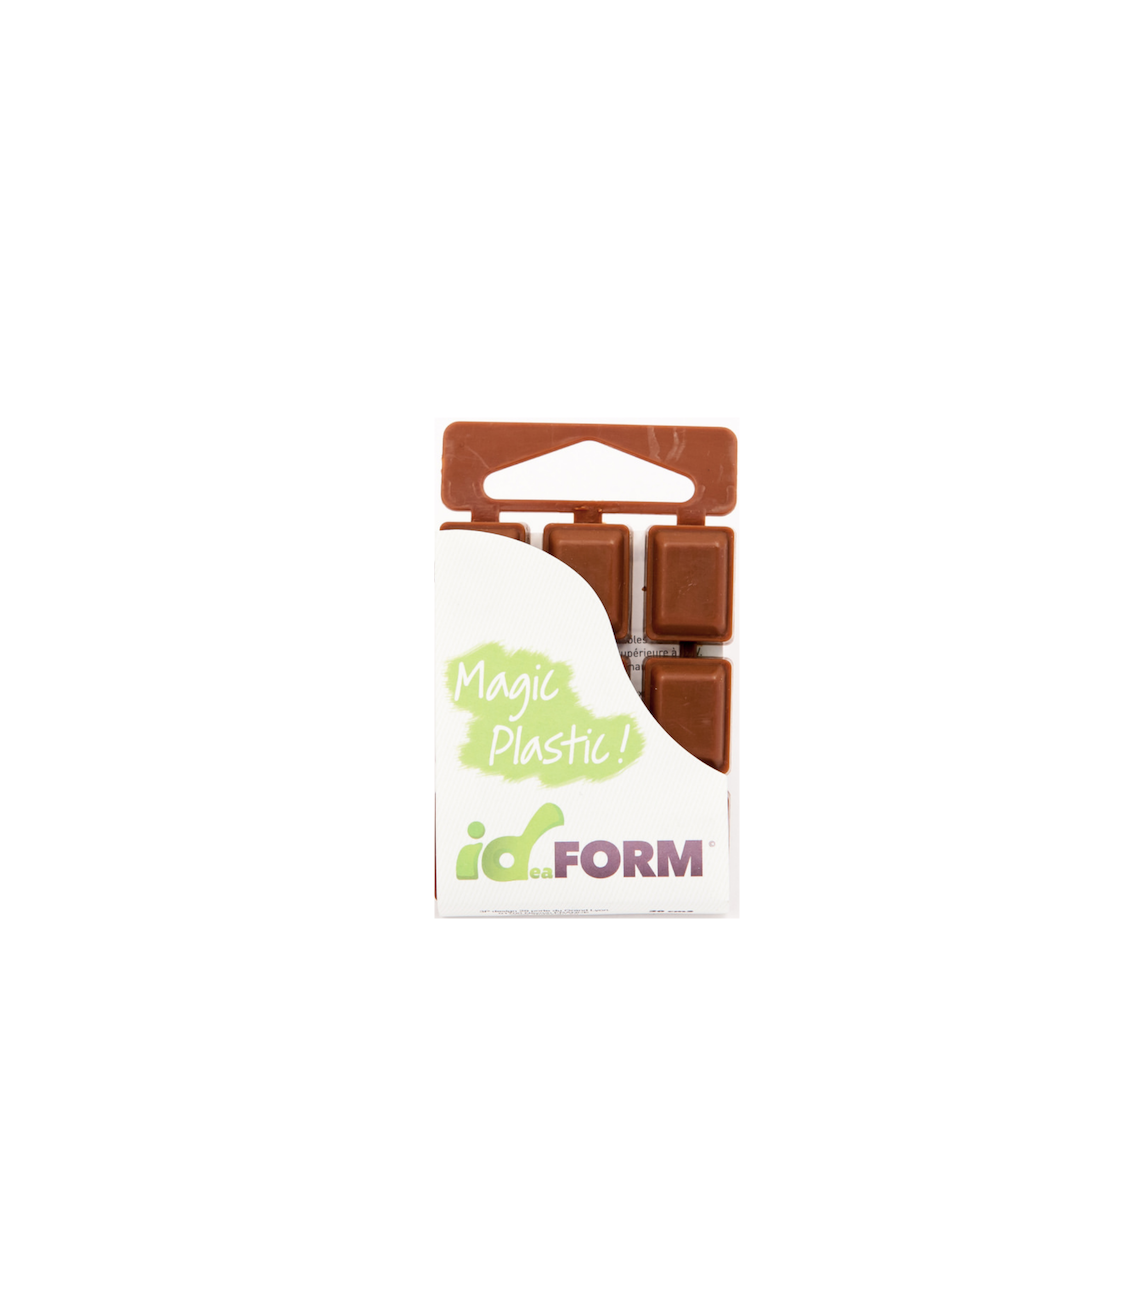 IDEAFORM ID-FORM TABLETTE PLASTIQUE THERMOFORMABLE MARRON 20 CM3 REPARER RENOVER MAGIC PLASTIC HOME DECORATION BRICOLAGE ART 3700820001153 COMASOUND KARTEL CSK ONLINE